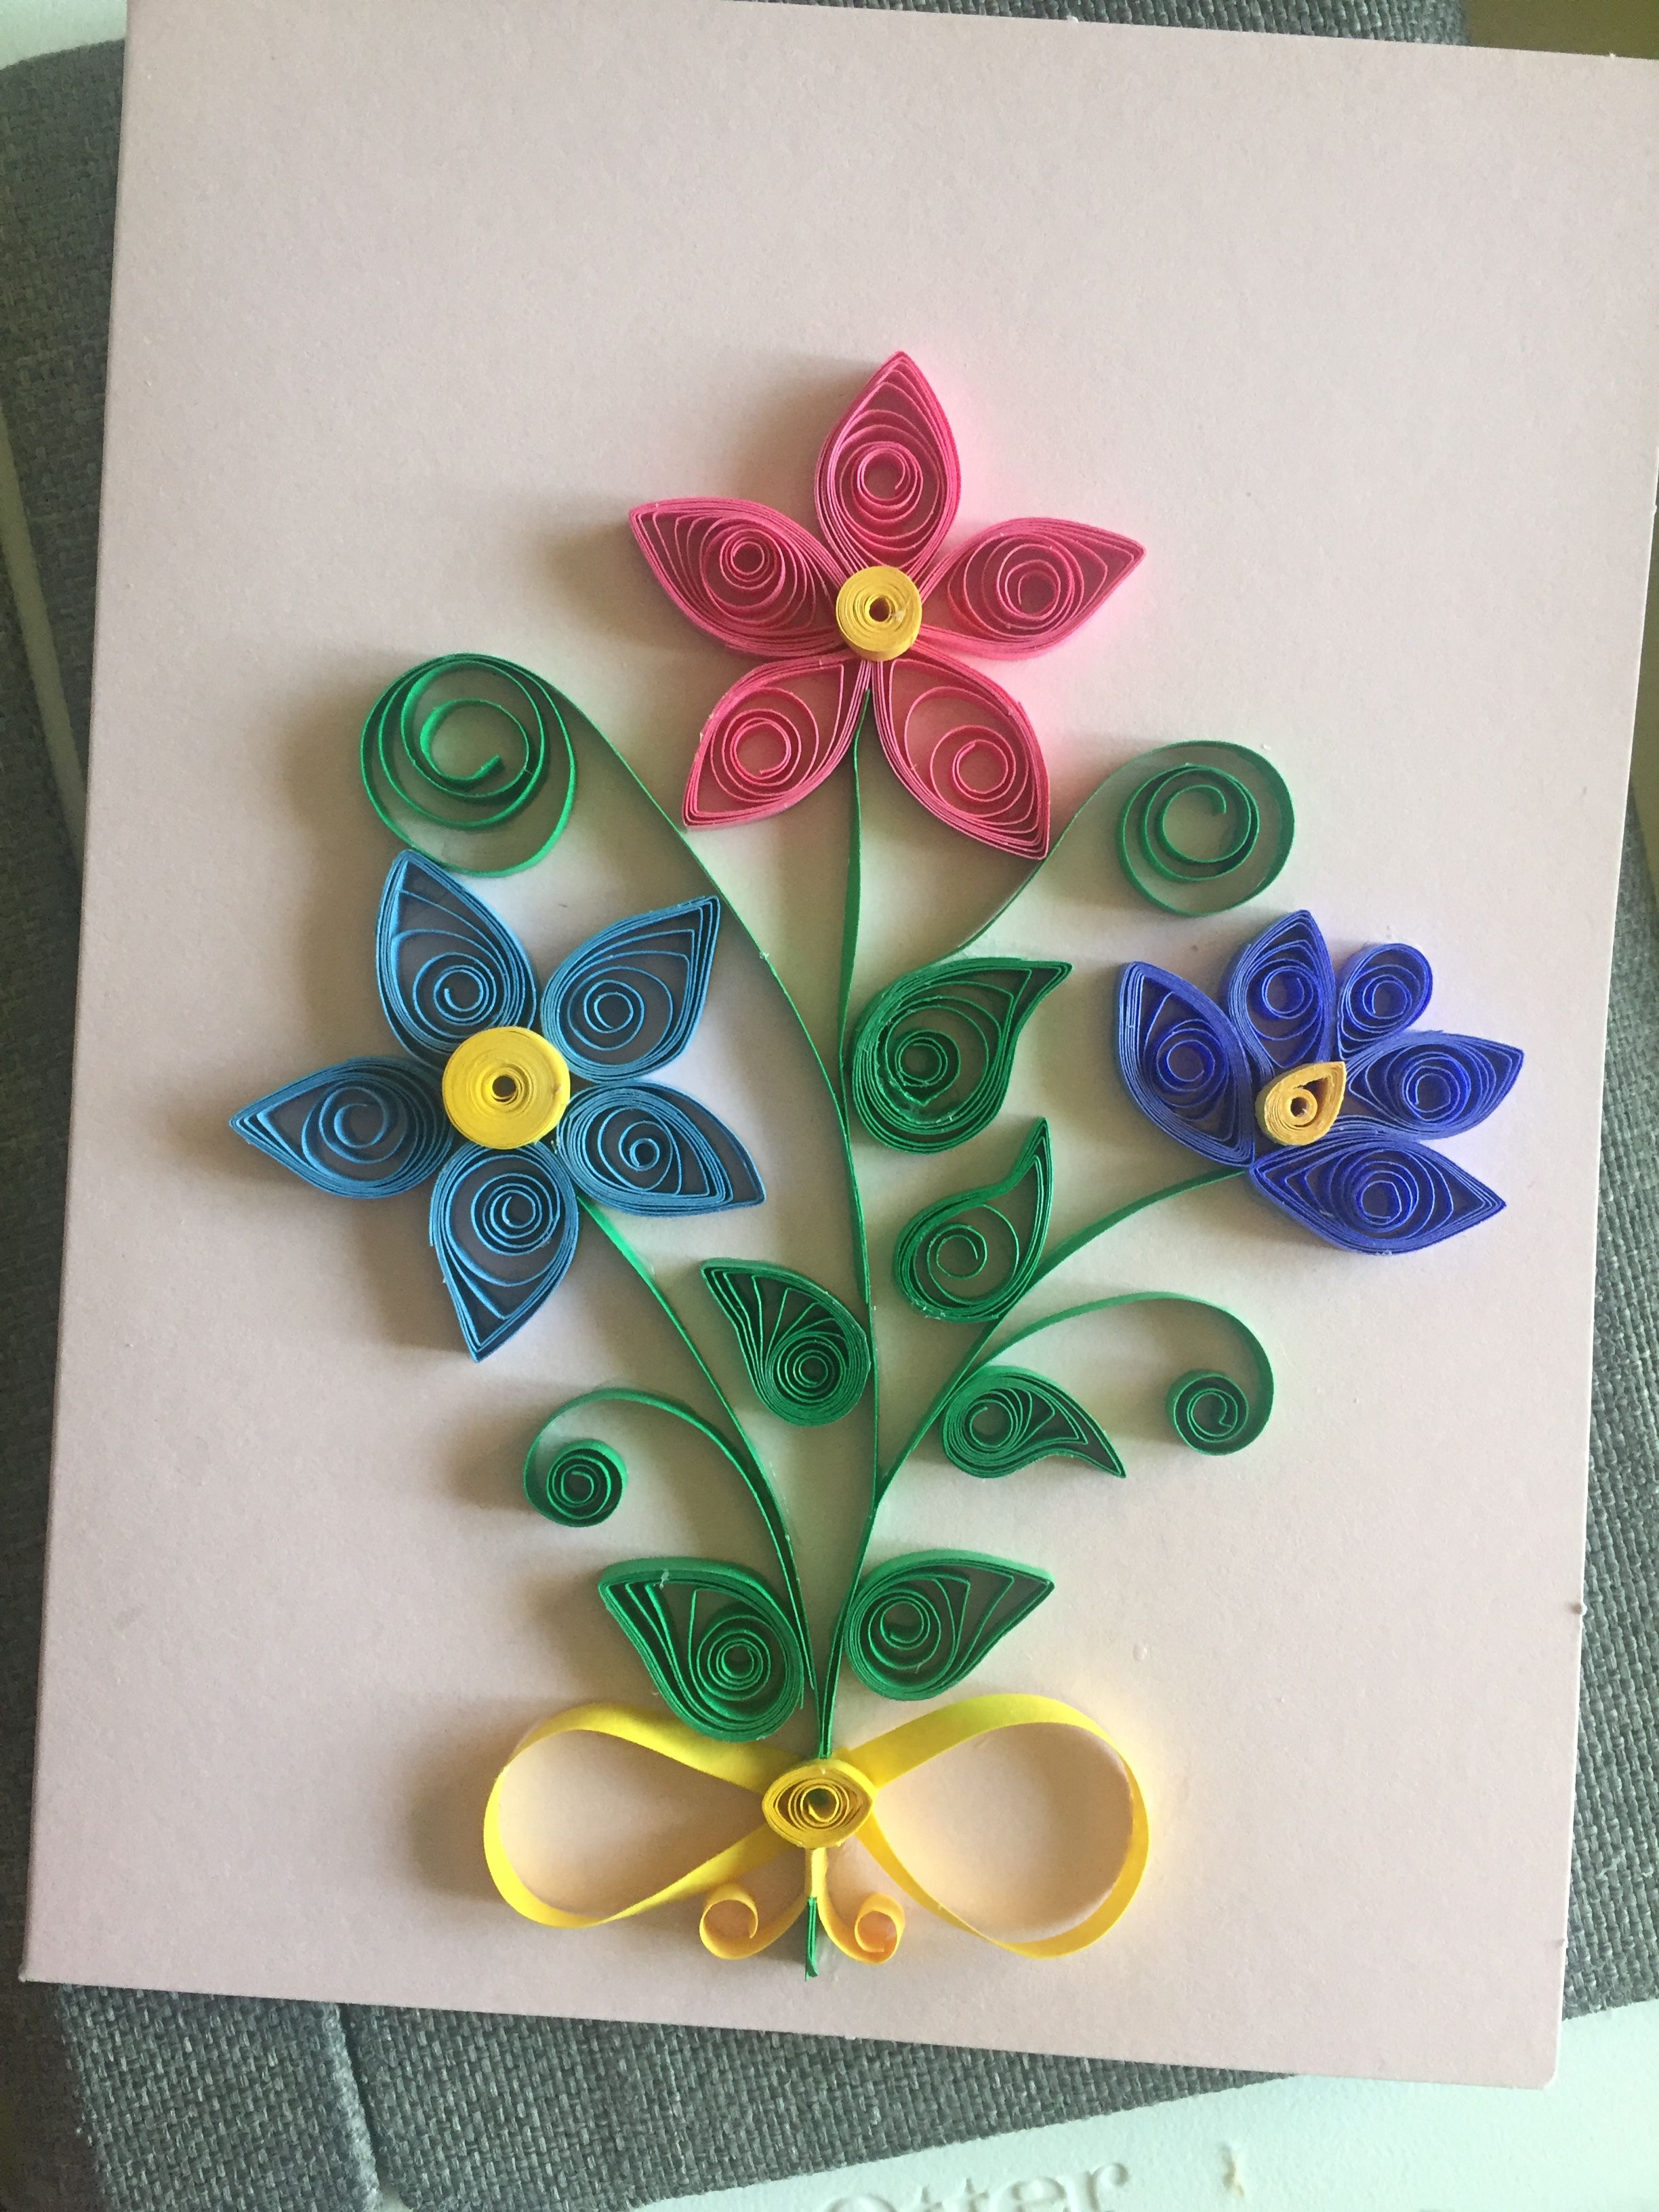 Pin By Marylou Nichols On Cards Quilling Designs Quilling